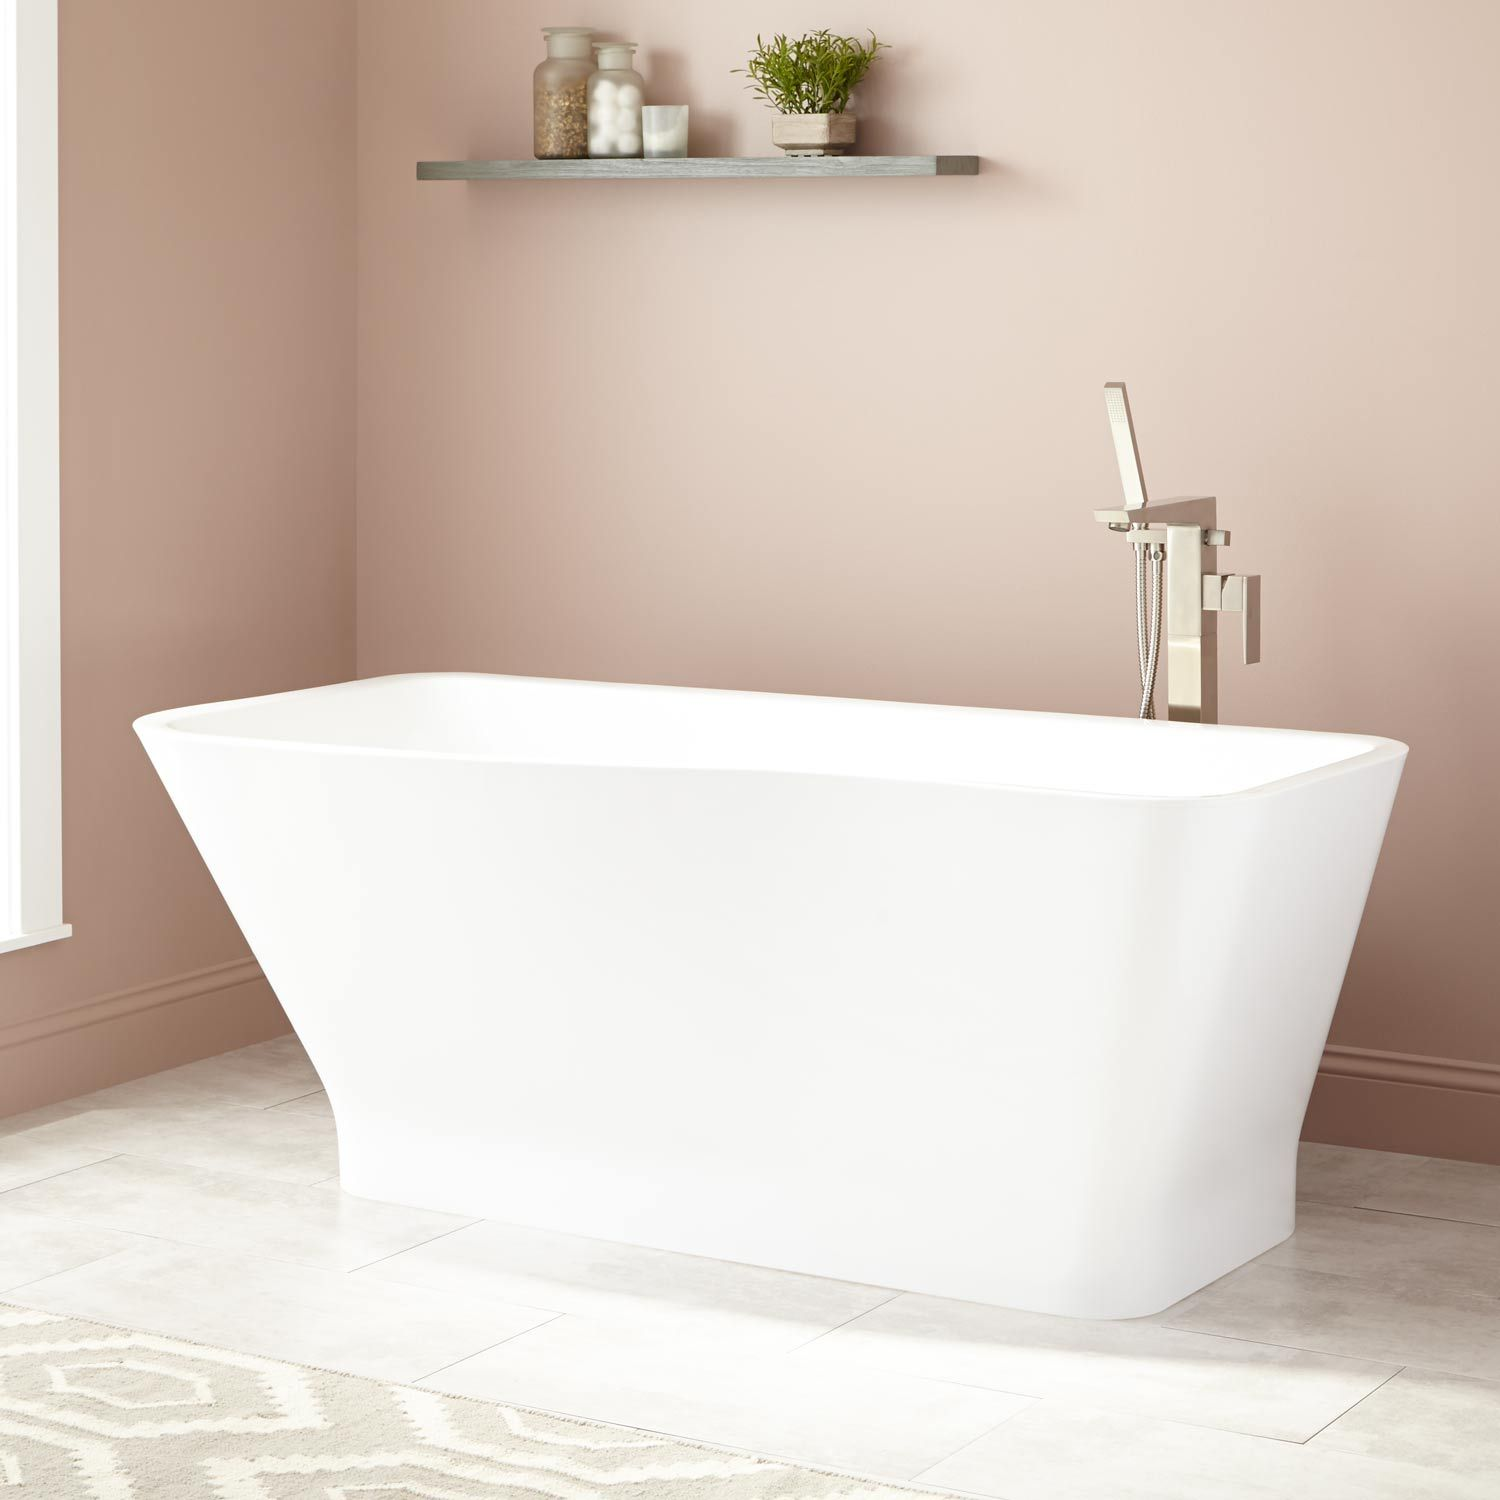 freestanding tub with faucet holes. Maryse Acrylic Freestanding Tub  No Faucet Holes 69